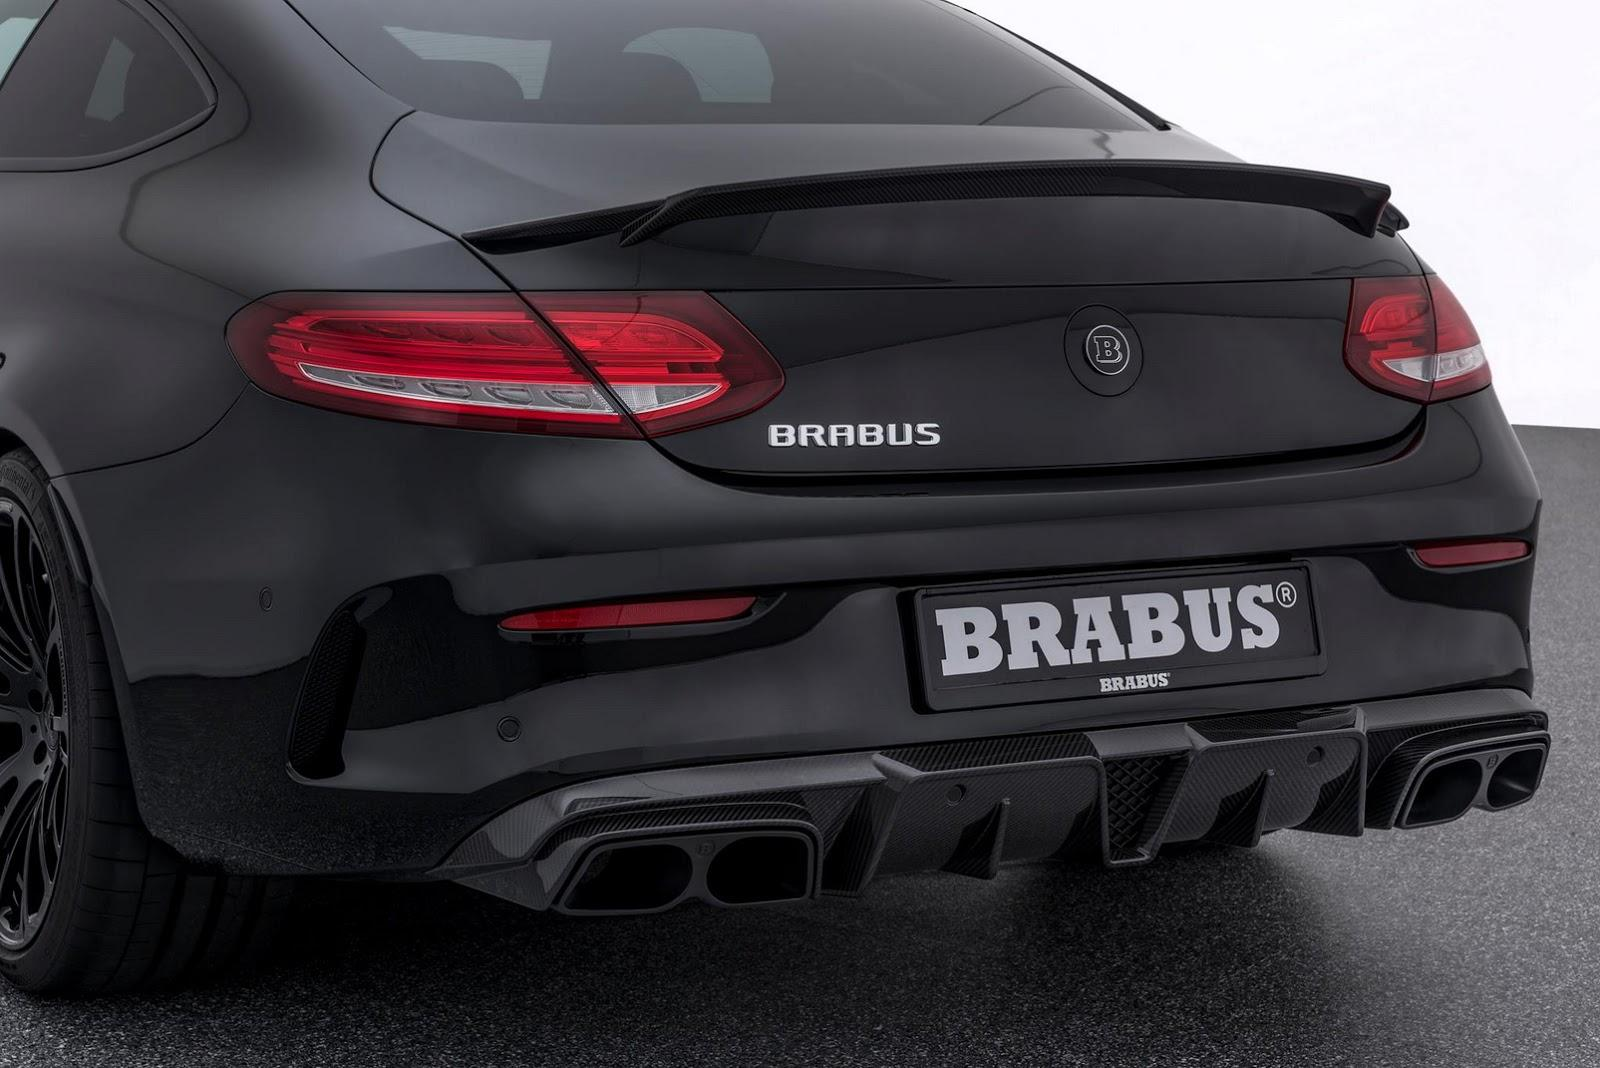 Mercedes-AMG C63 S by Brabus - Mercedes-AMG C63 S by Brabus